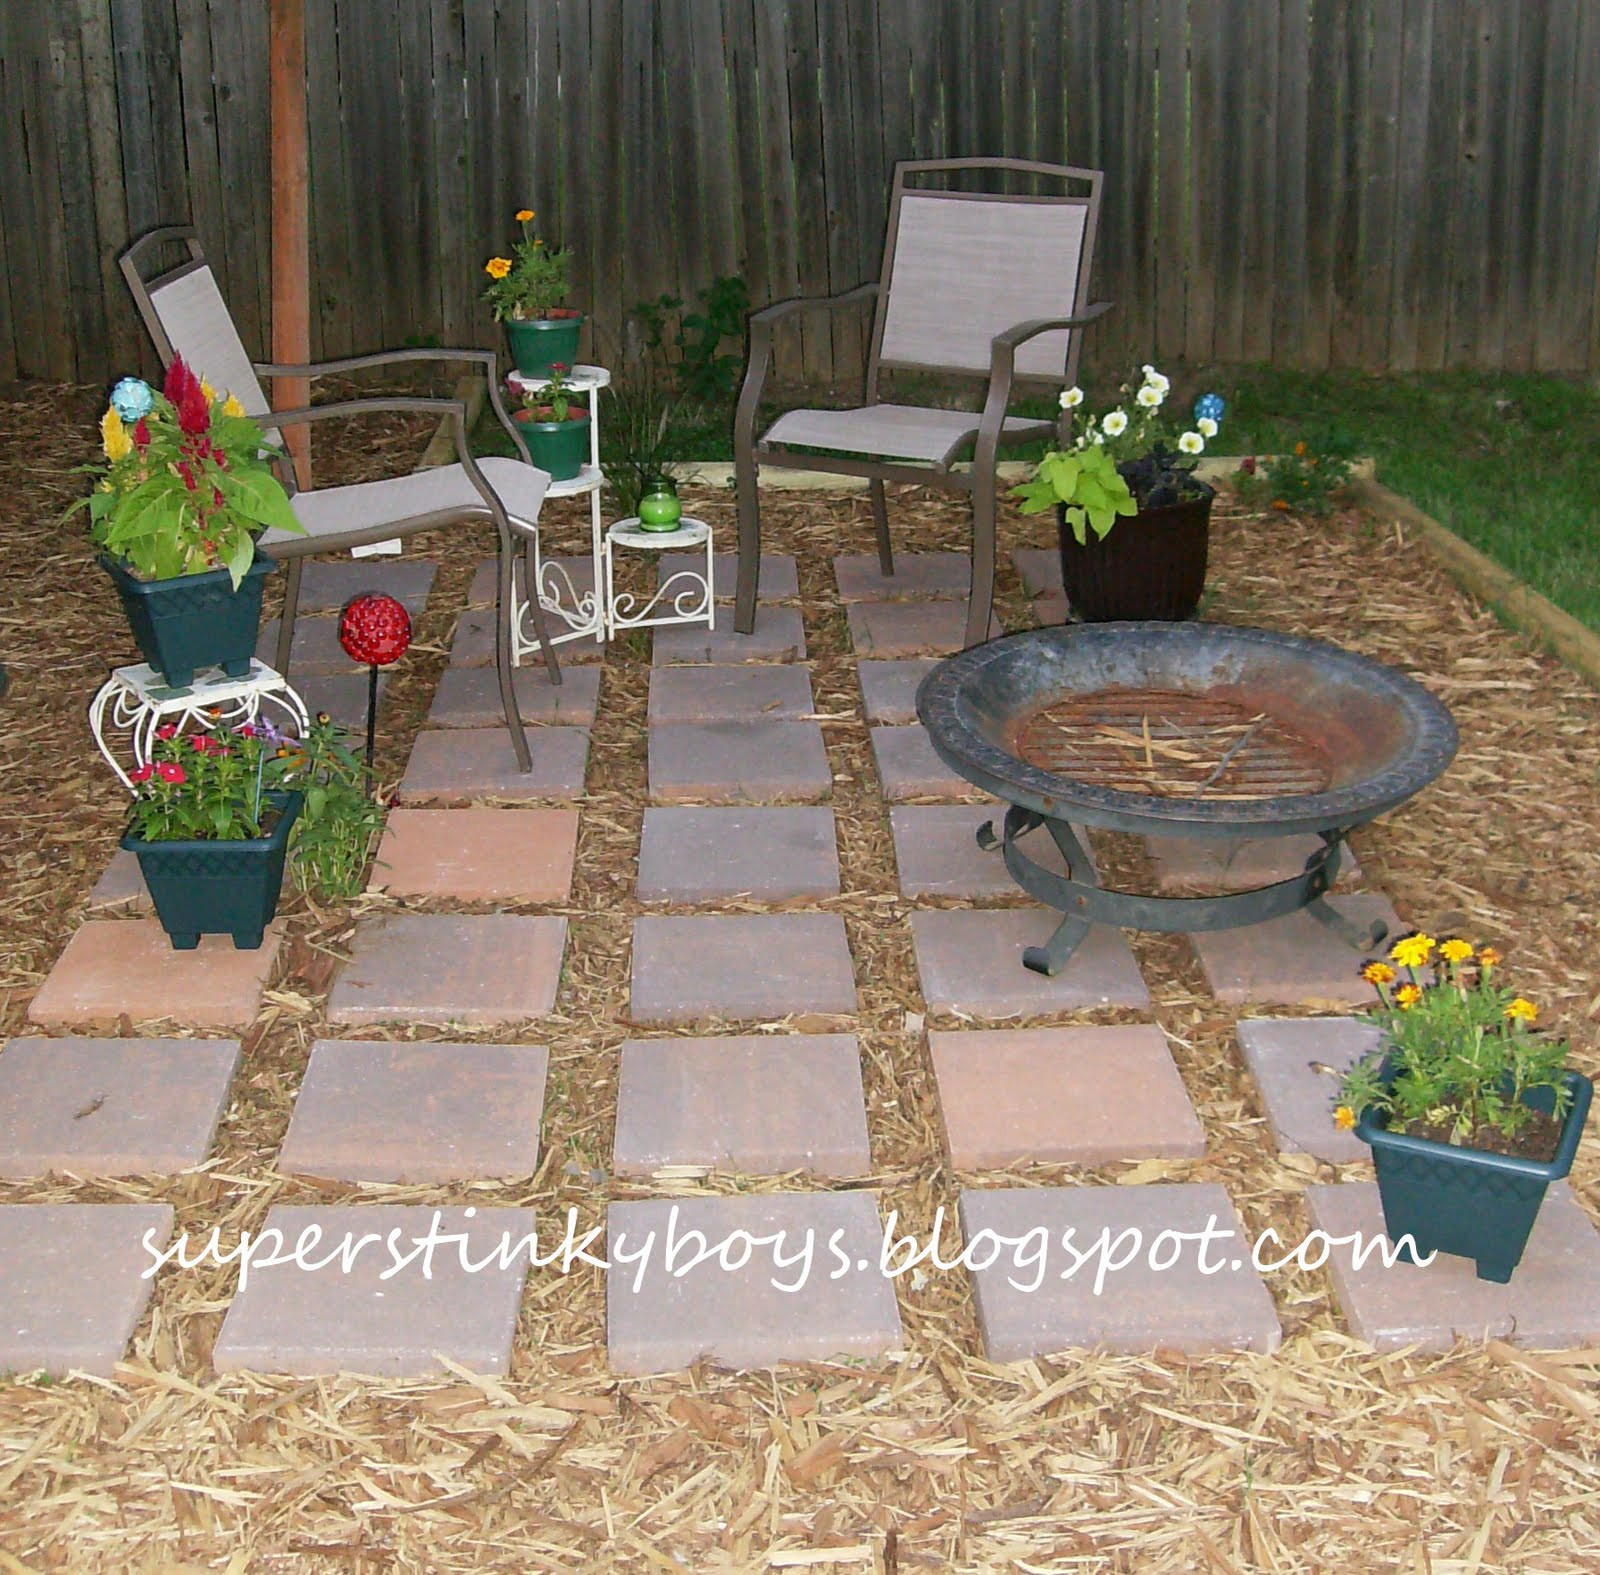 Best ideas about Diy Backyard Patio . Save or Pin Support Blog for Moms of BOYS DIY Backyard Oasis Now.